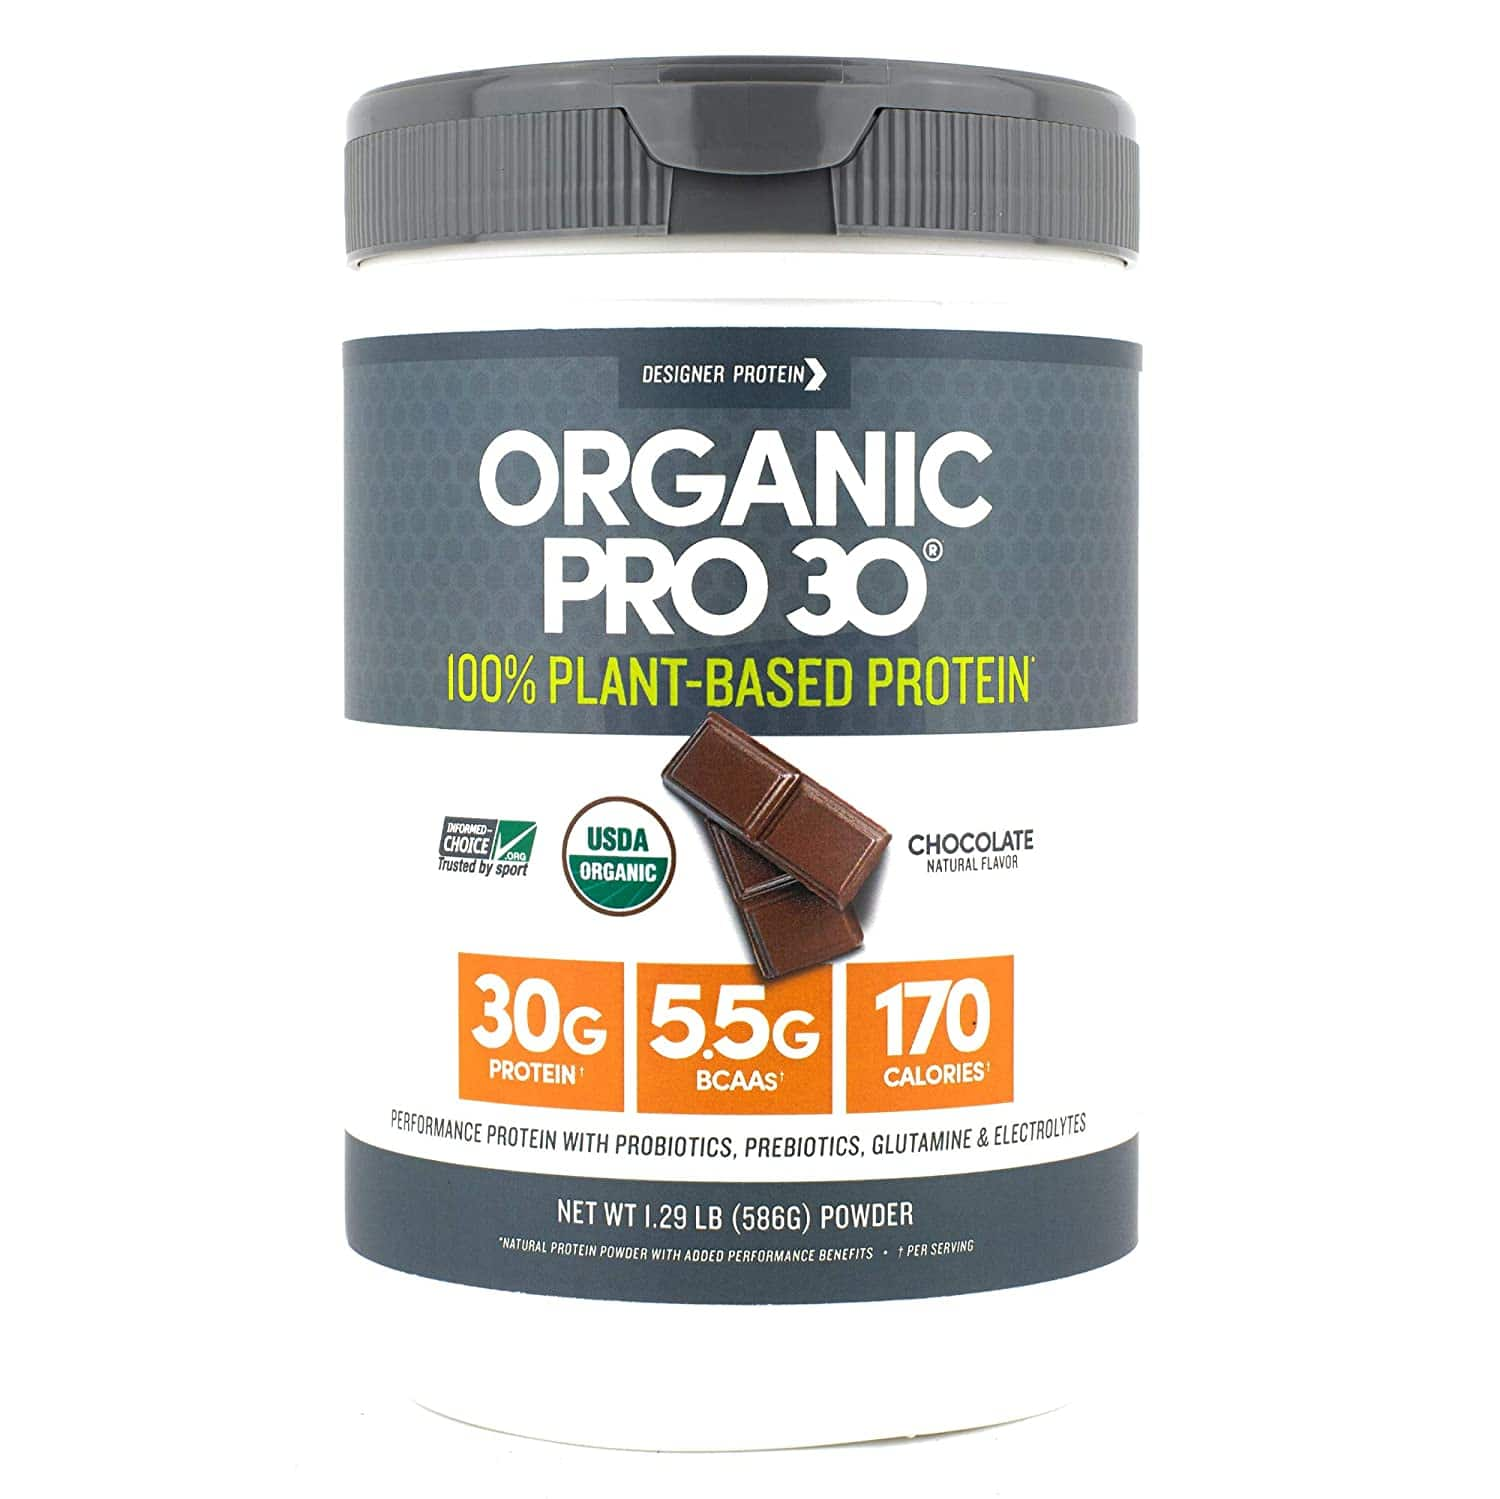 Designer Protein Organic Pro 30, Chocolate, 1.29 Lb, 100% Plant Based Protein Powder $12.10 @Walmart or less @Amazon